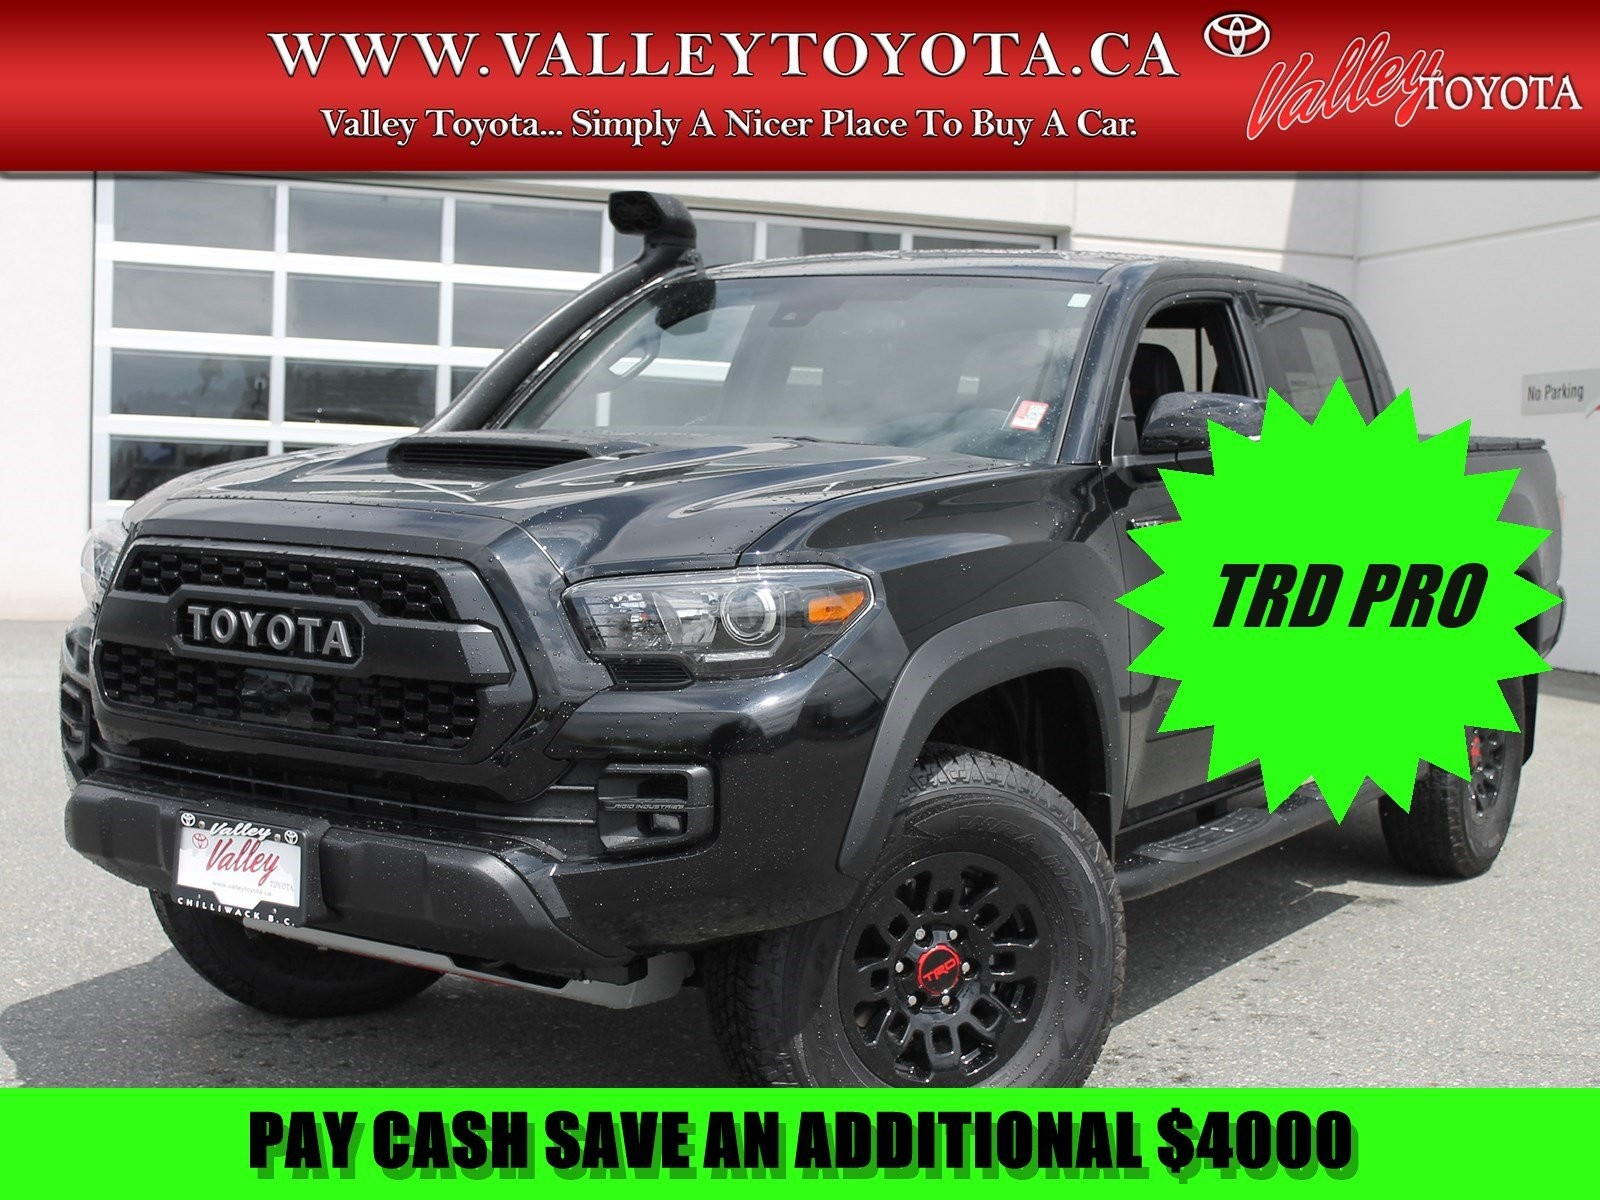 Toyota Truck Parts Diagram New 2019 toyota Ta A Trd Pro with Navigation & 4wd Of Toyota Truck Parts Diagram